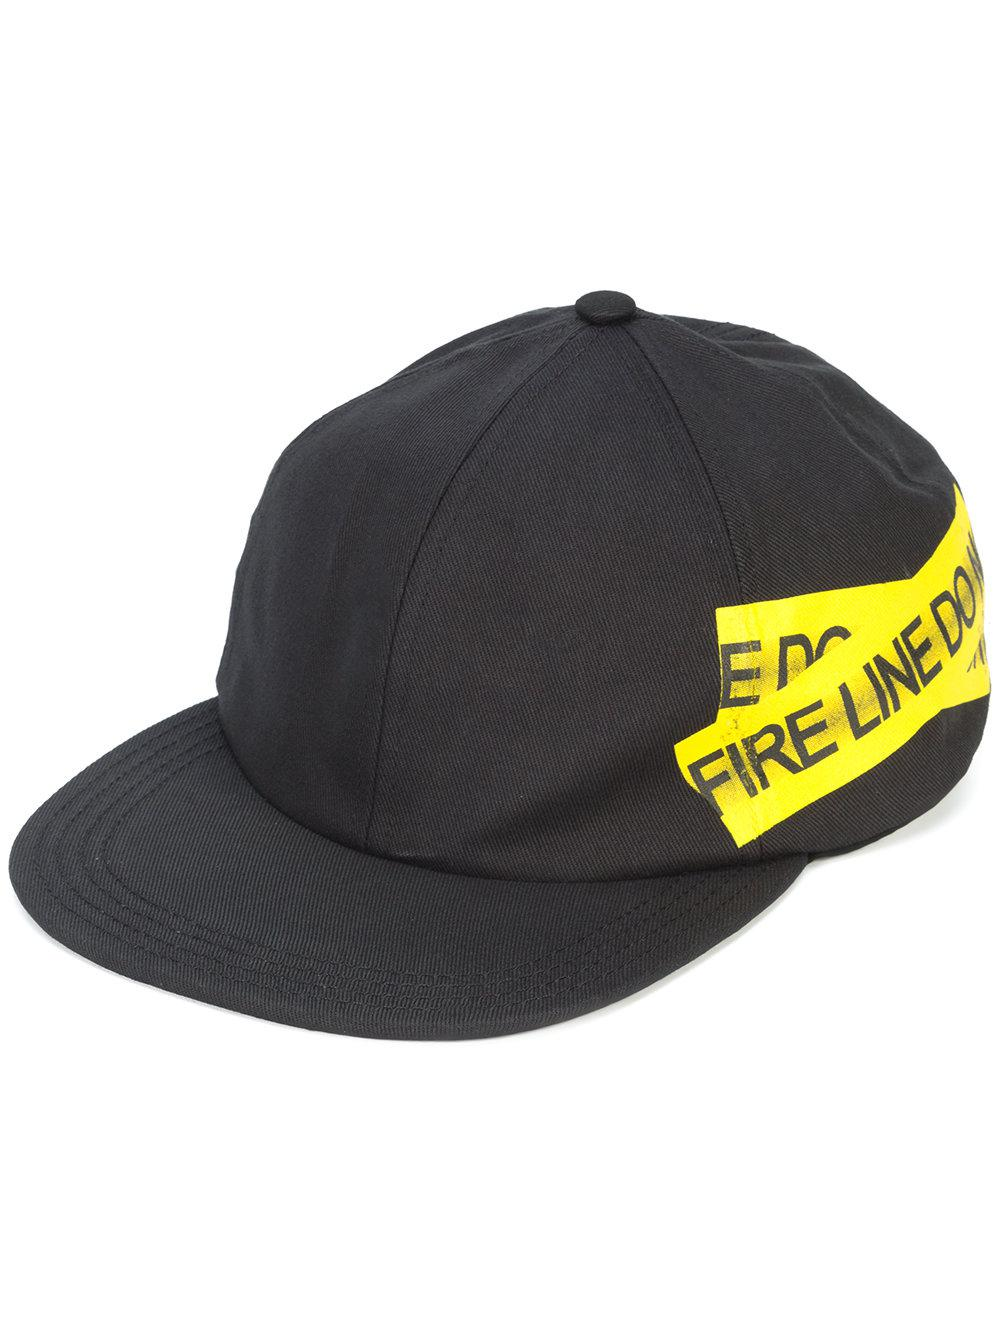 1daa92faf12baa Off-White c/o Virgil Abloh Firetape Hat in Black for Men - Lyst